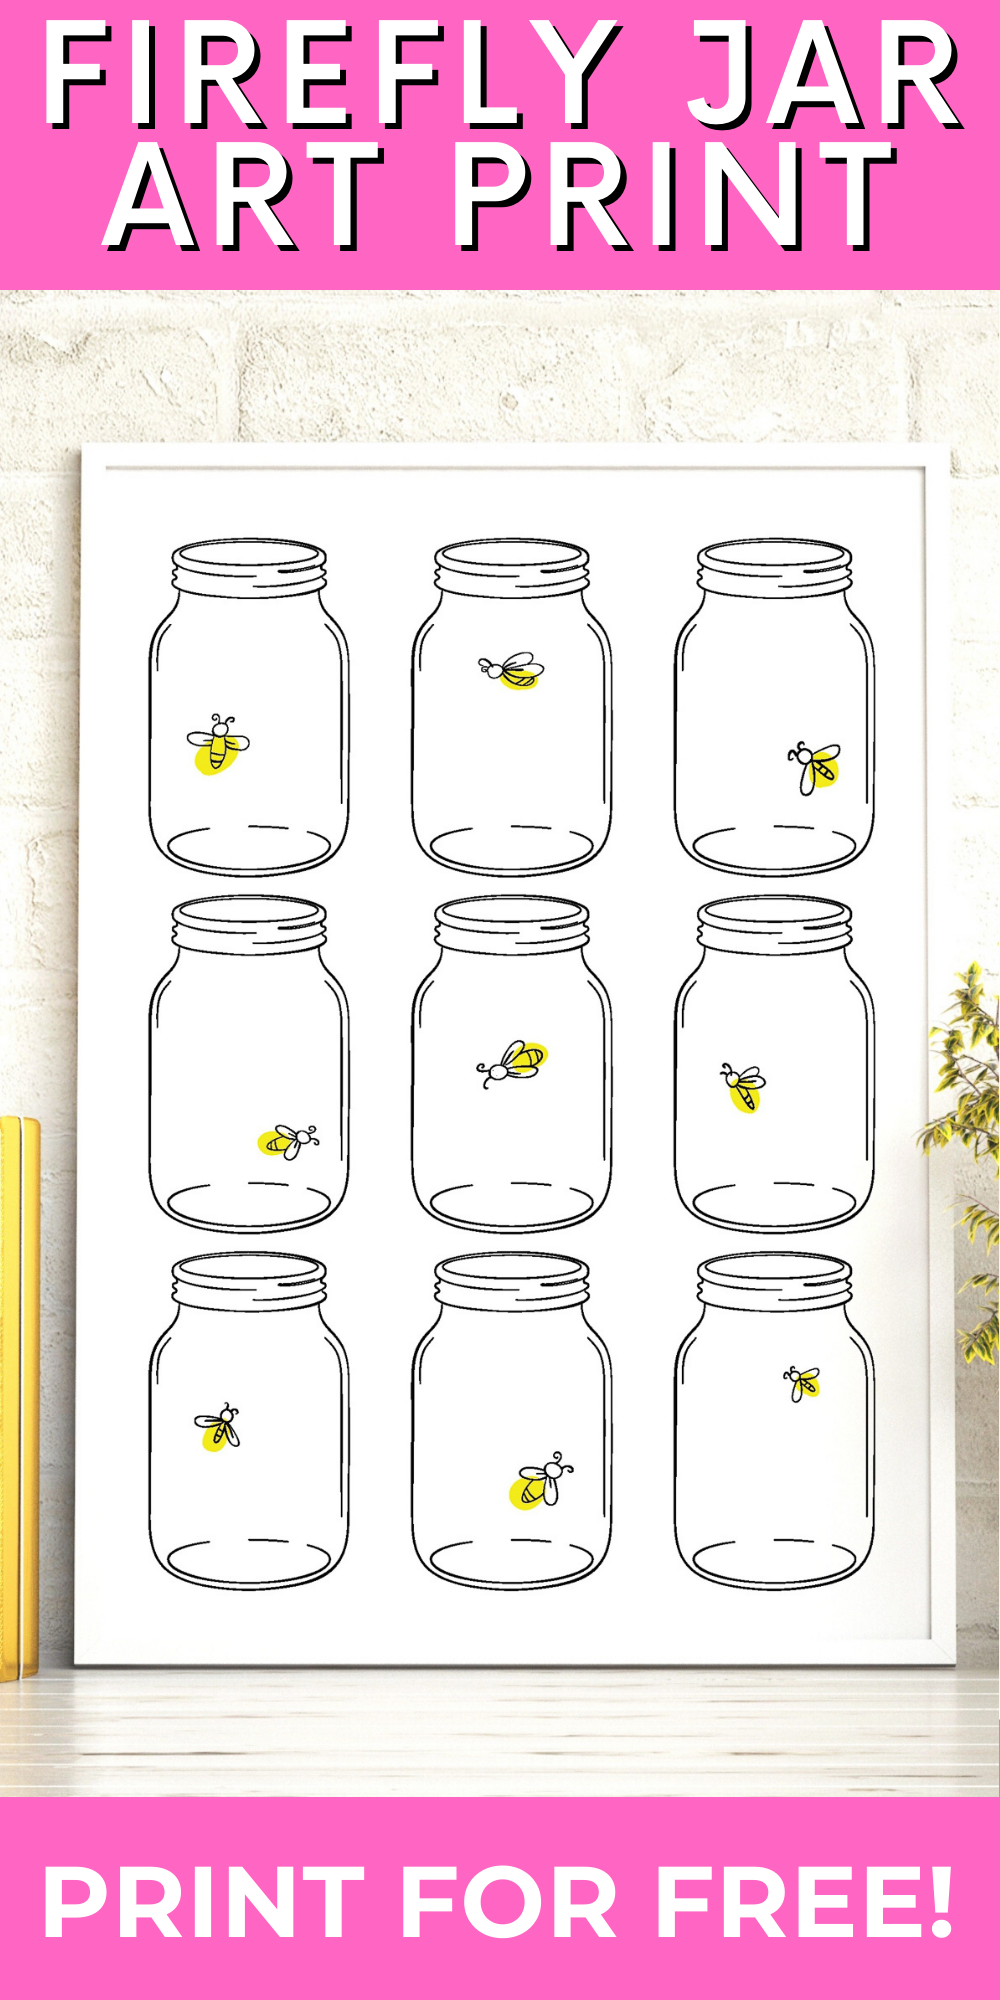 Grab this free printable art with mason jars and fireflies! This cute and whimsical art is perfect for just about any room in your home! #masonjar #freeprintable #printableart